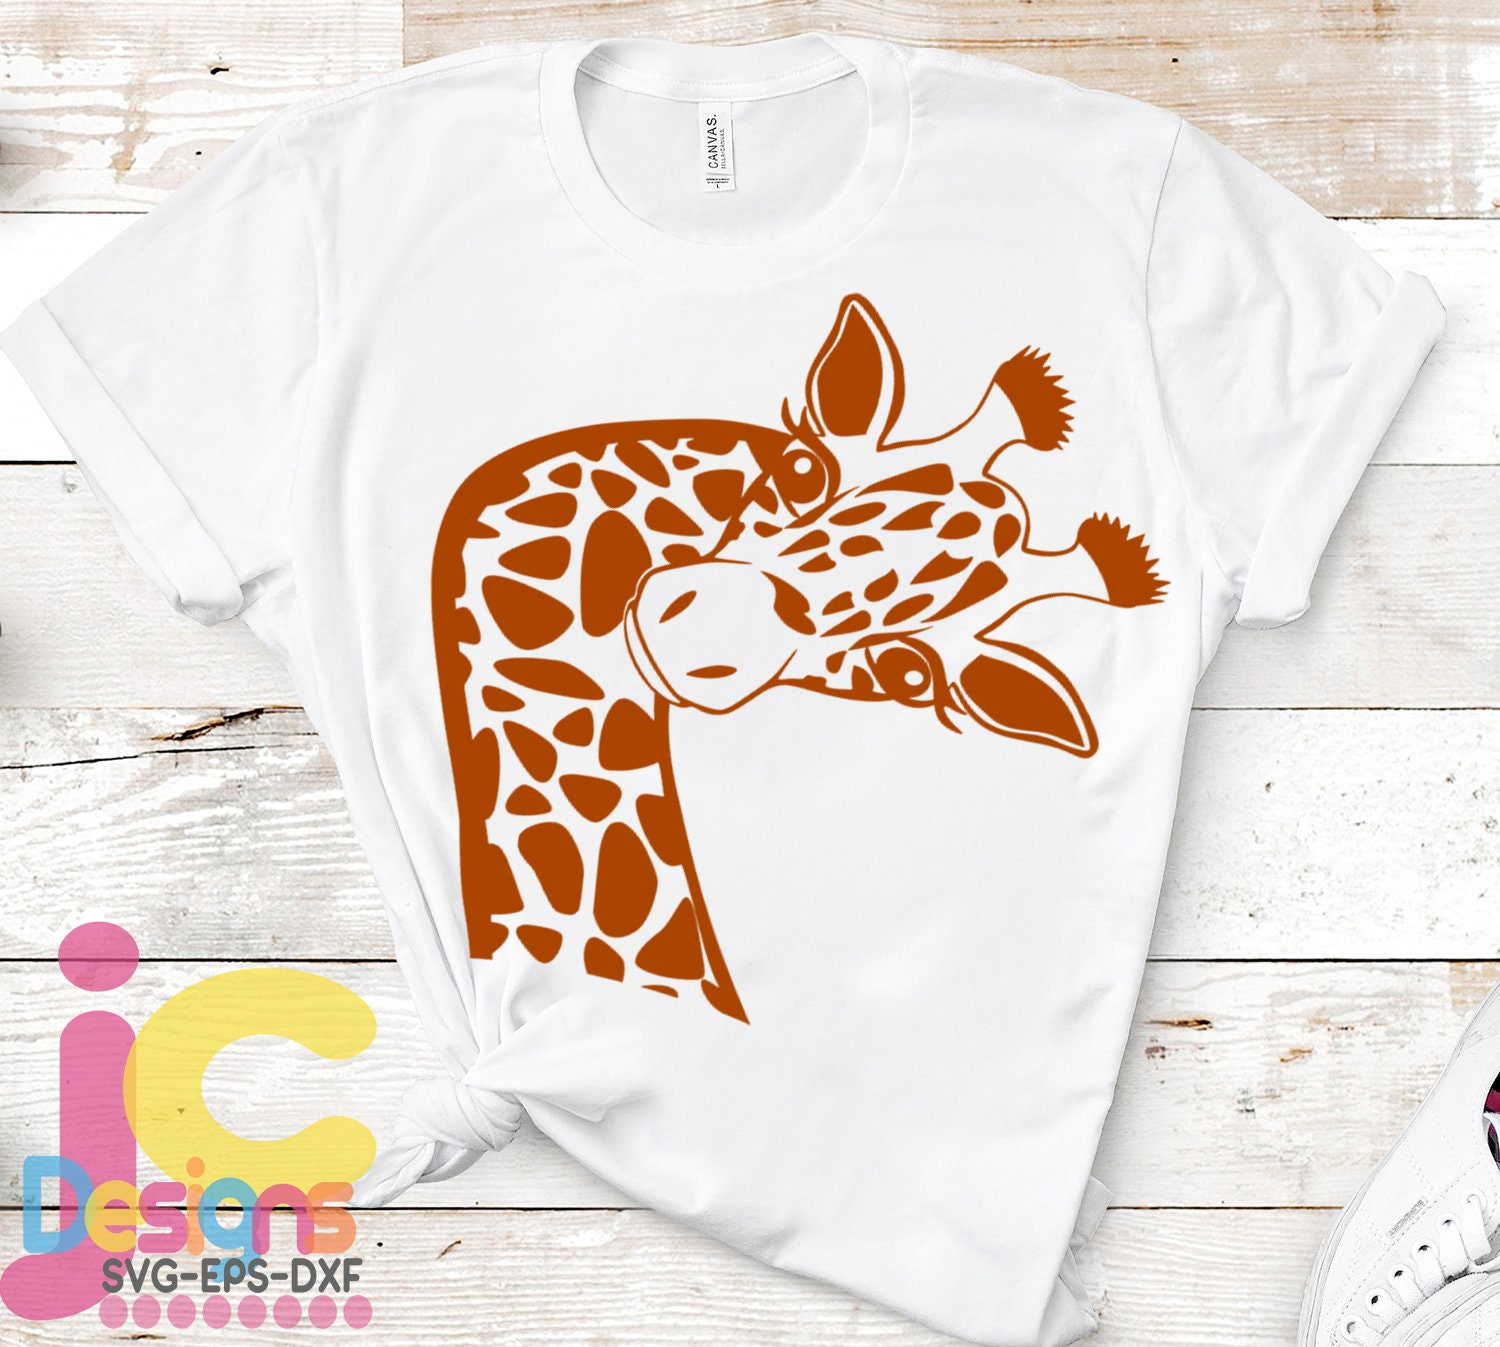 Funny Giraffe Svg Giraffe Svg Cute Fun Giraffe Svg Safari Etsy